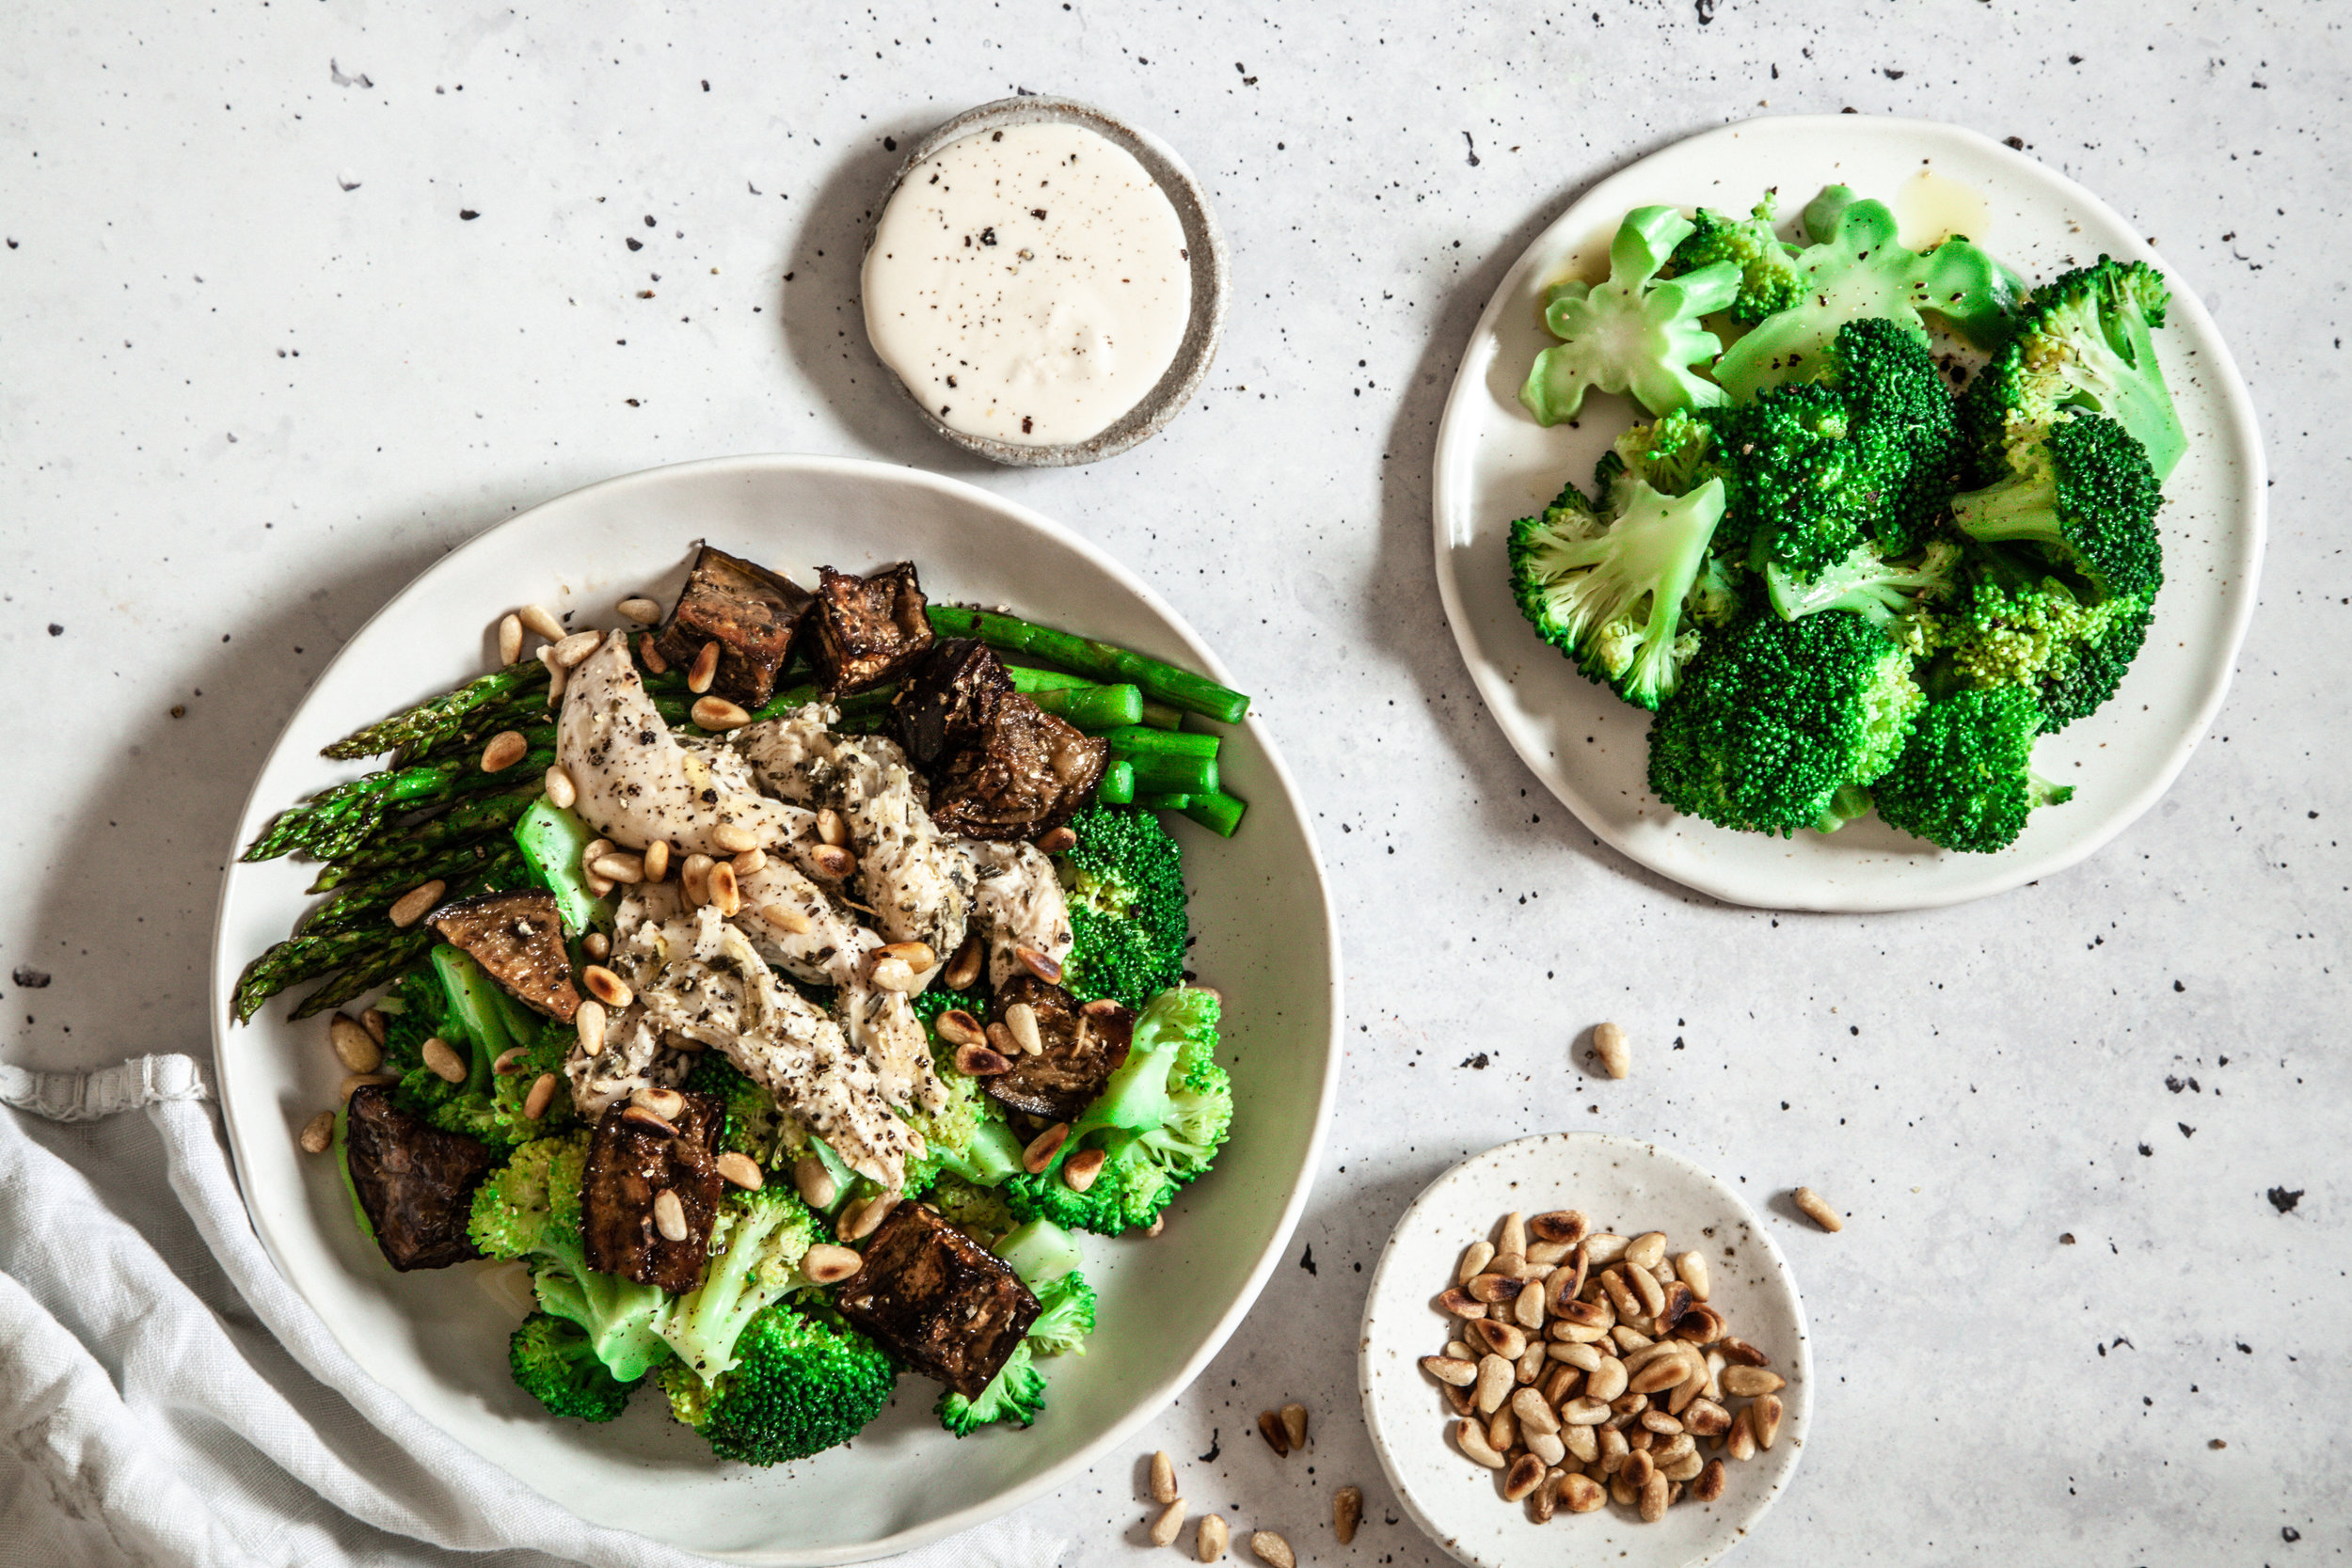 Herby chicken and eggplant bowl from Made